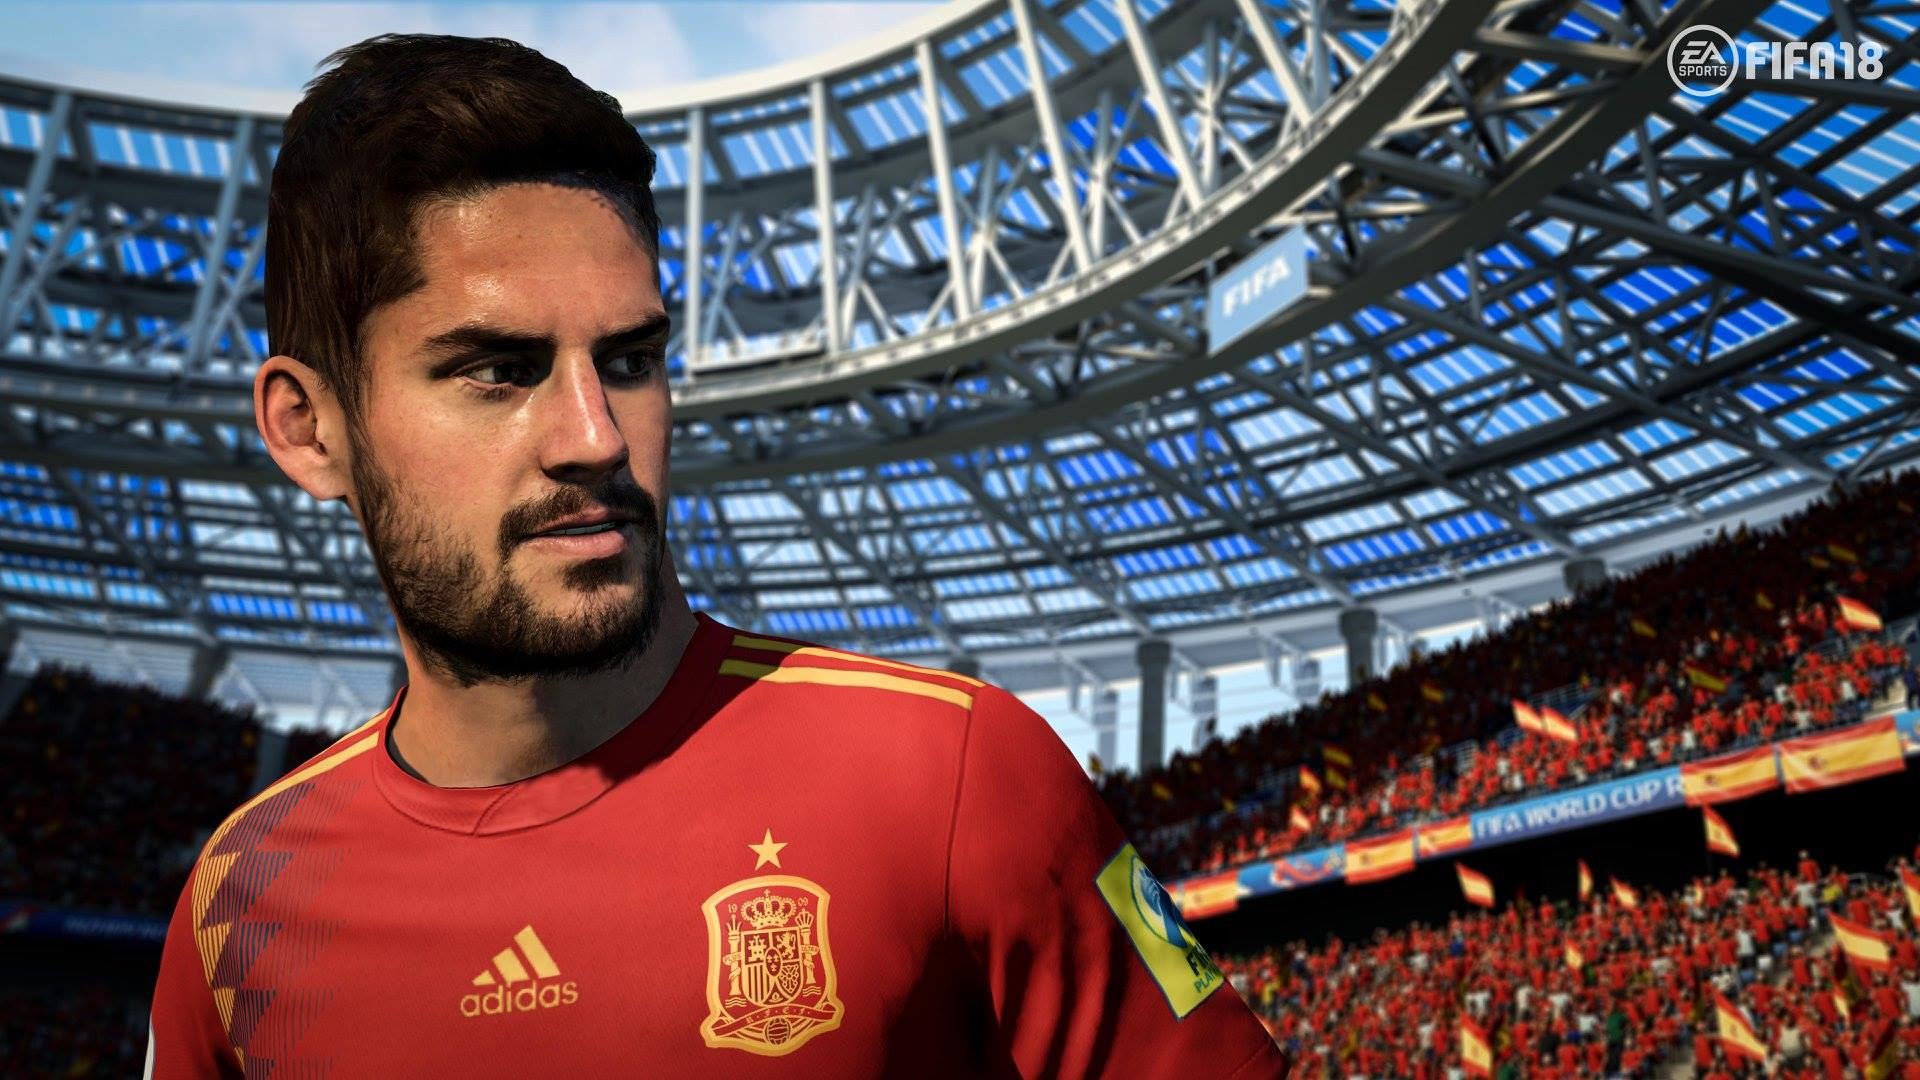 fifa-18-wm-screenshot-isco